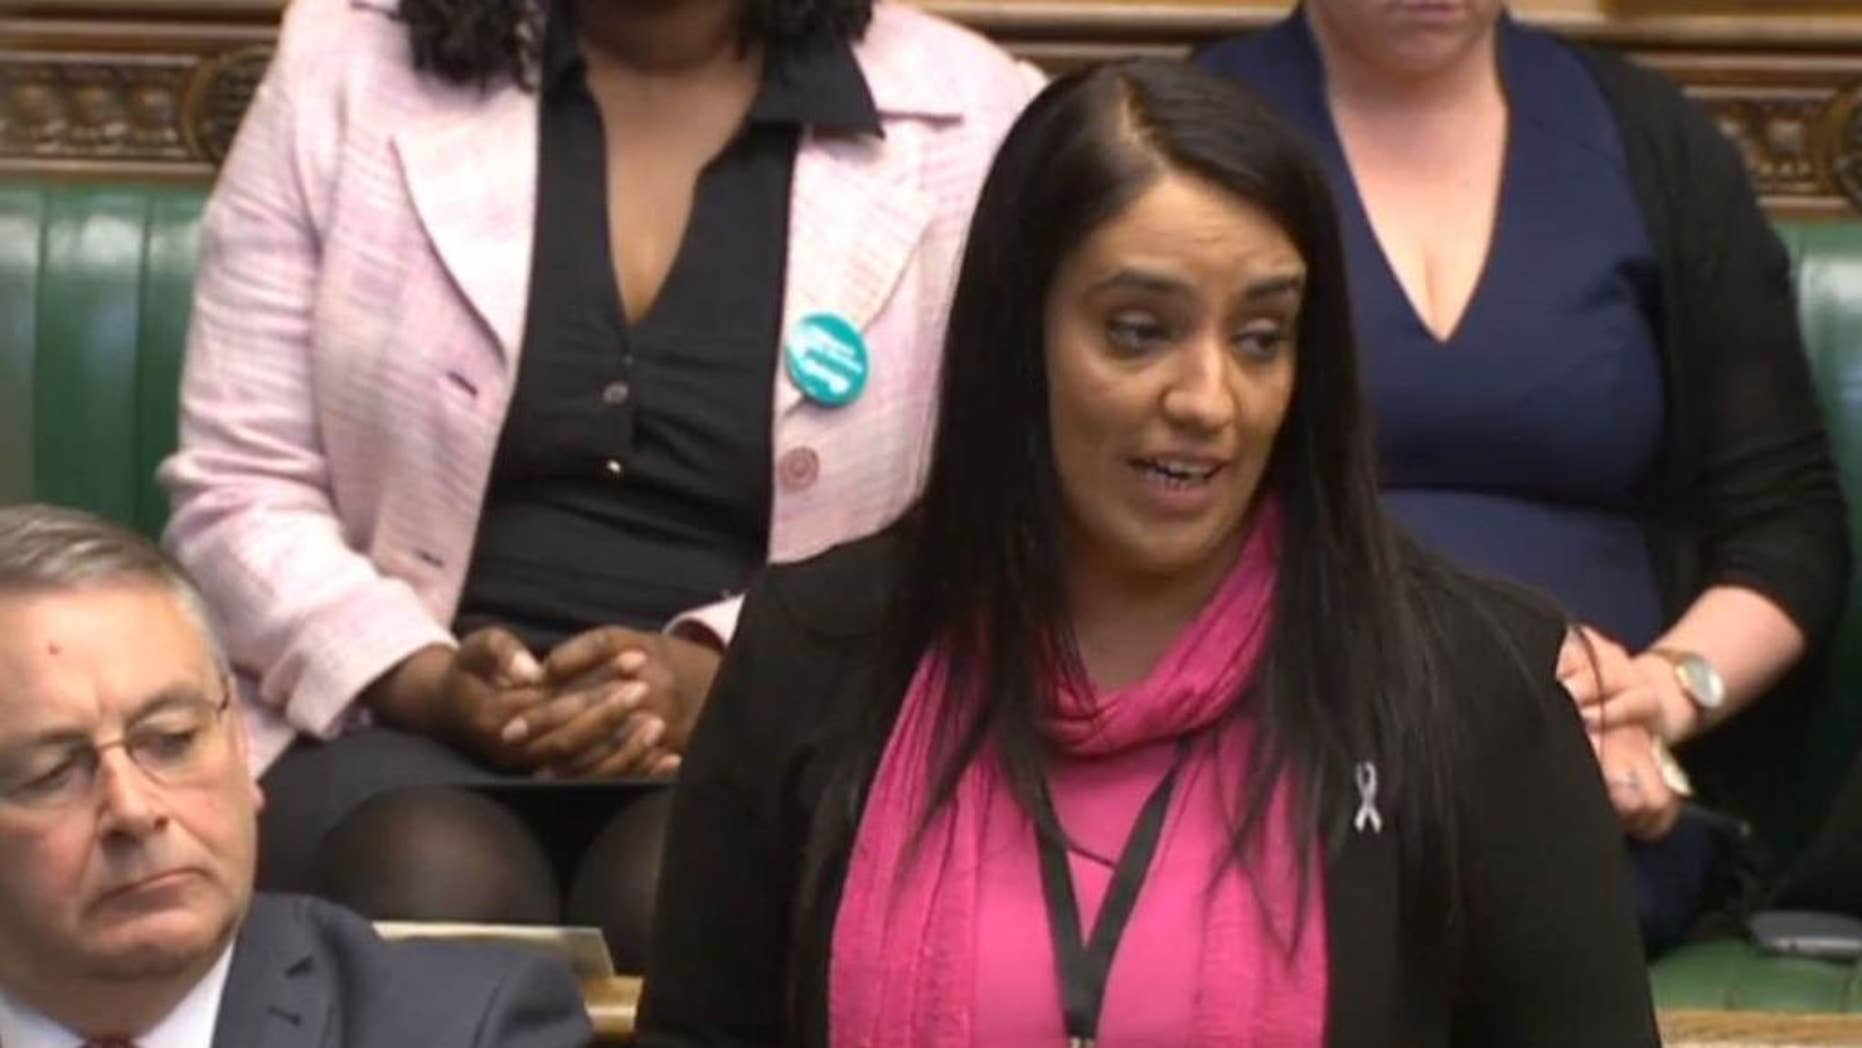 Britain's Labour MP Naz Shah makes a statement in the House of Commons, London, Wednesday April 27, 2016. Britain's main opposition Labour Party has suspended Shah for making anti-Israel posts on social media before she was elected to Parliament. (Parliament TV/  PA via AP) UNITED KINGDOM OUT - NO SALES - NO ARCHIVES